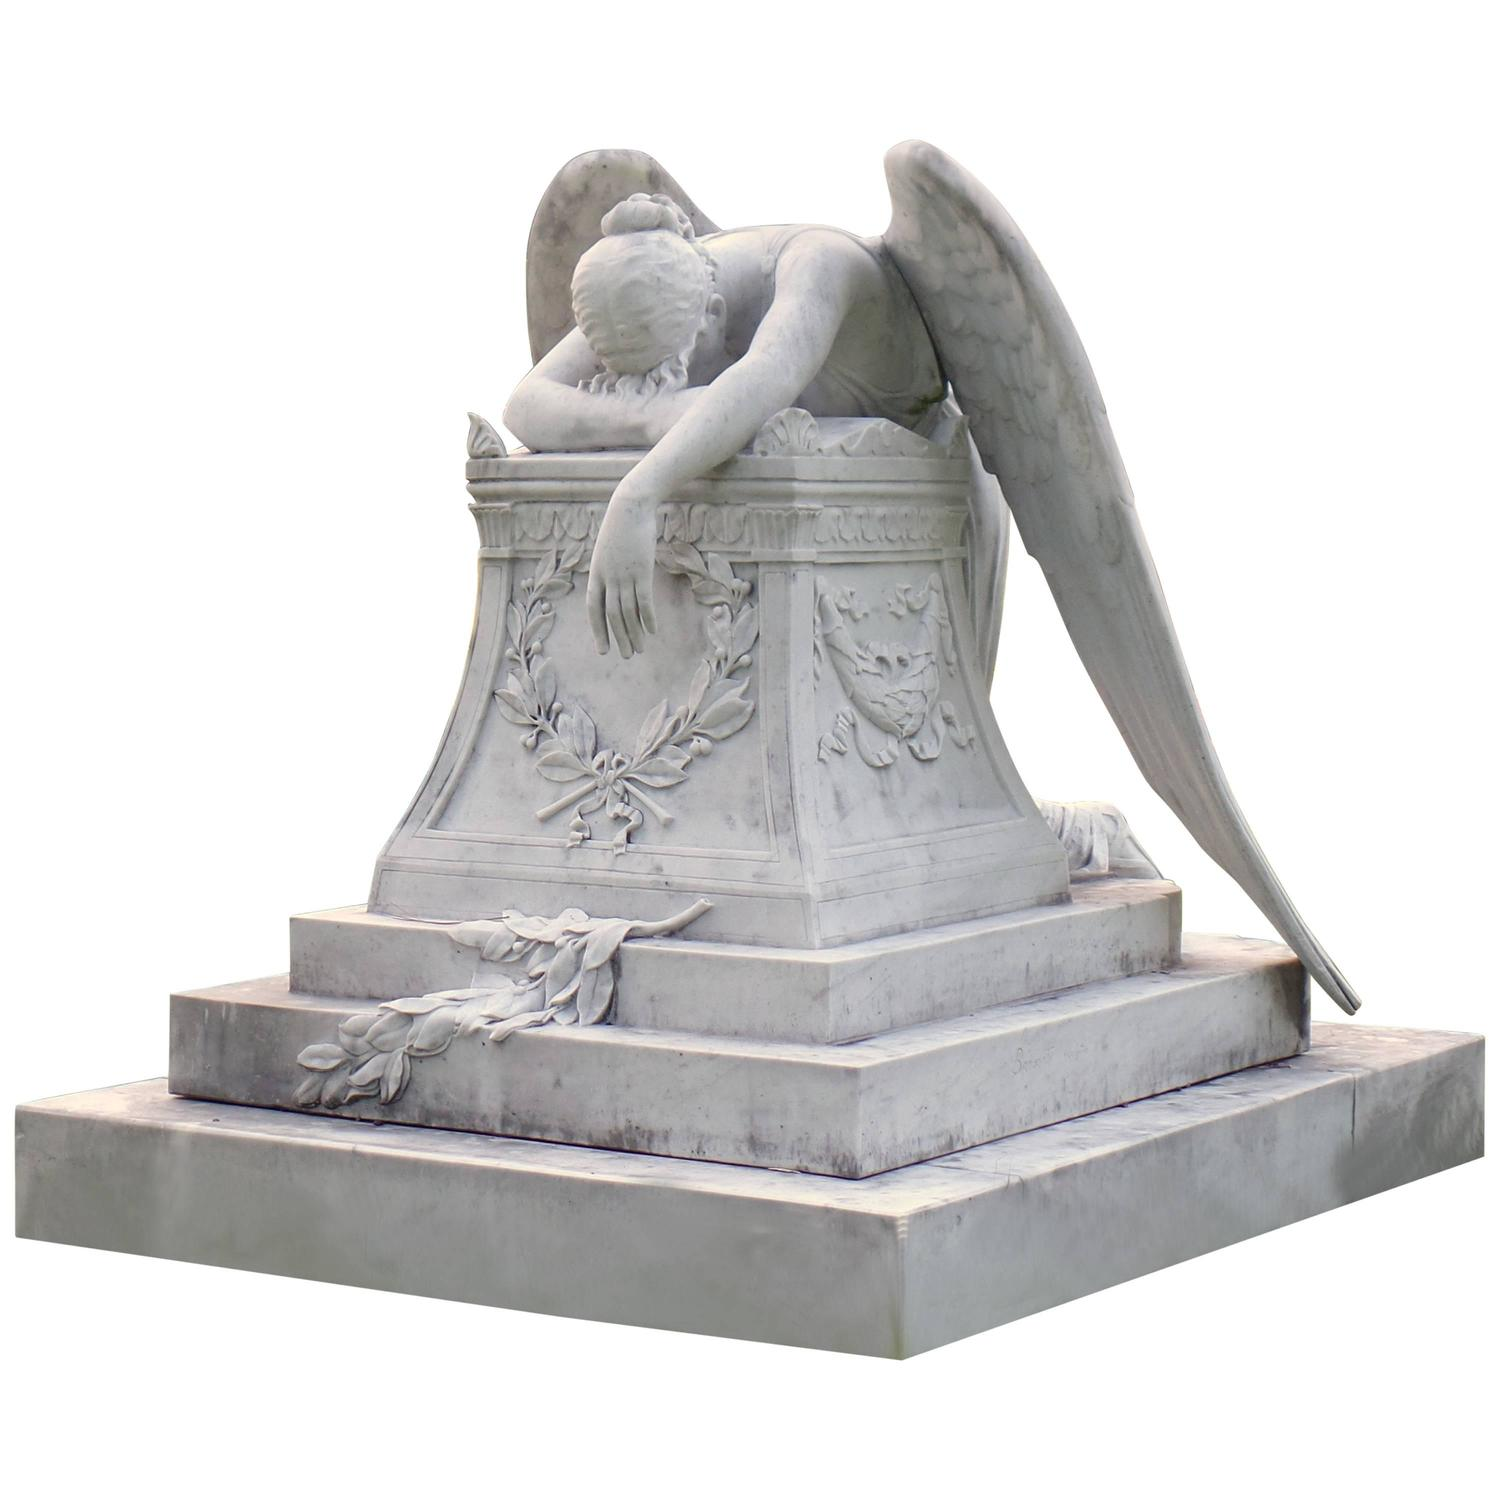 Marble Statues 119 For Sale at 1stdibs